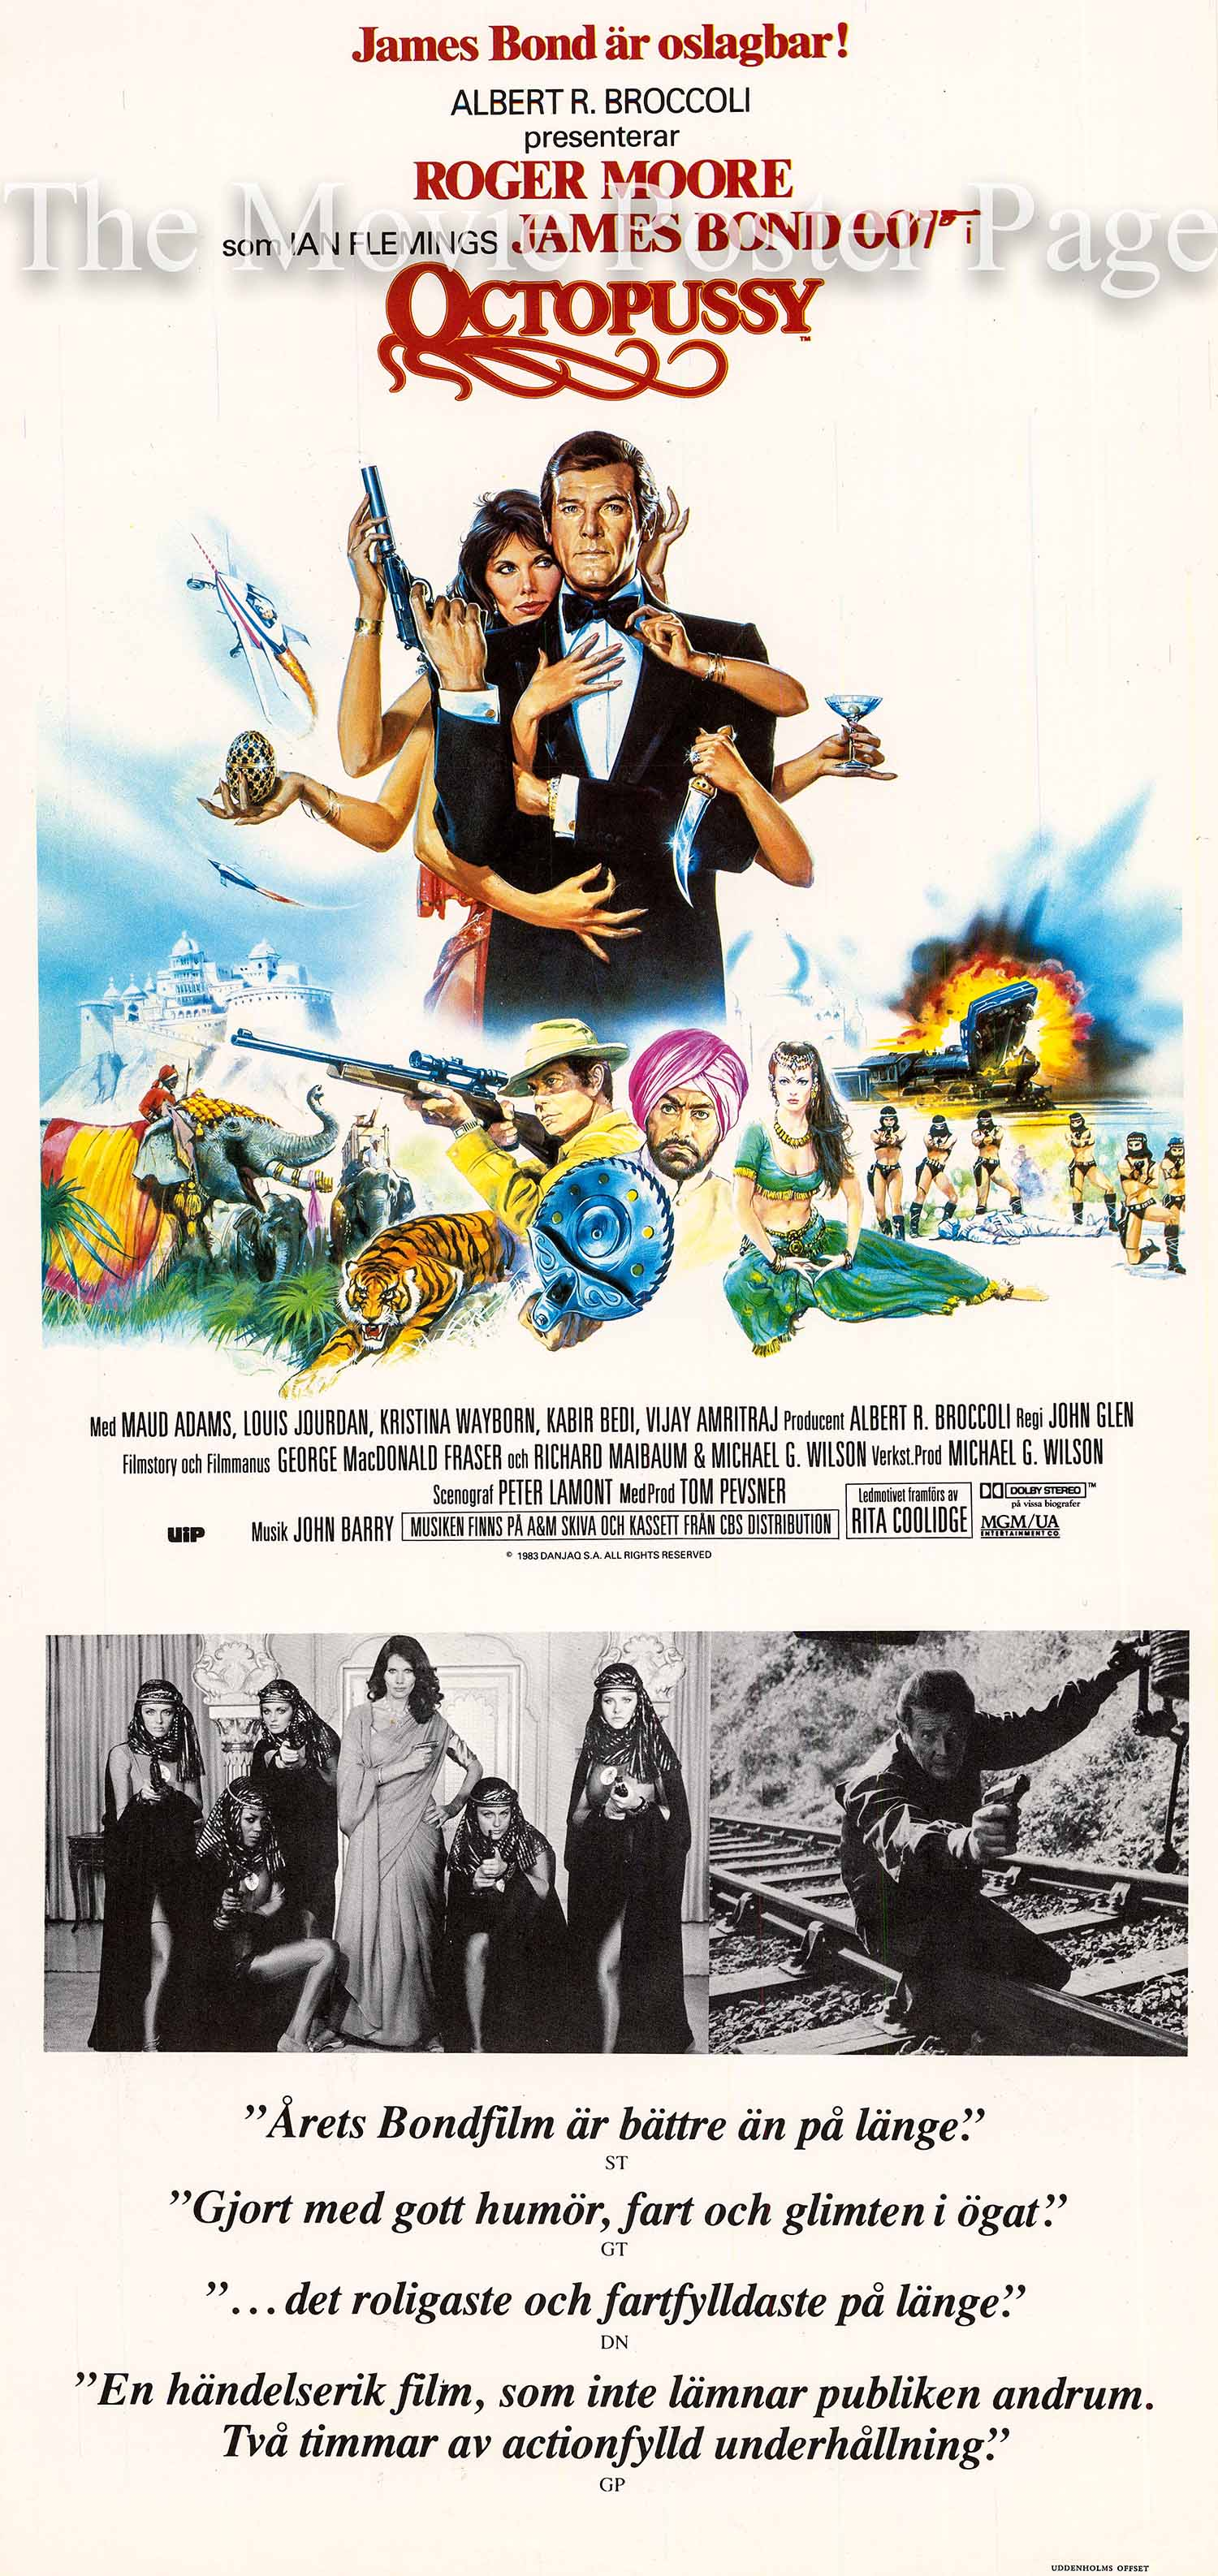 Pictured is a Swedish insert poster made to promote the 1983 John Glen film Octopussy starring Roger Moore as James Bond.